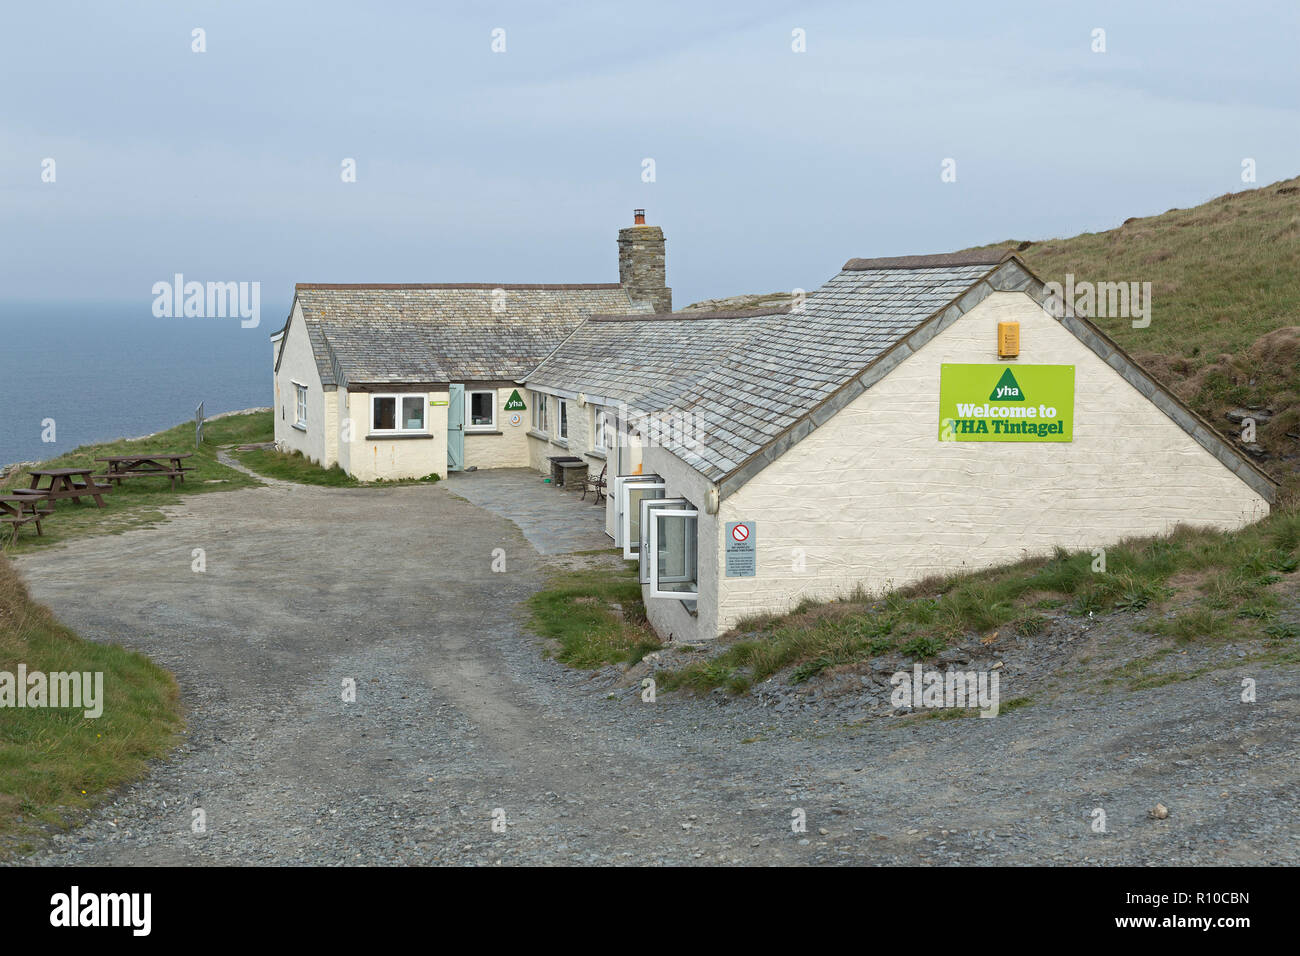 youth hostel, Tintagel, Cornwall, England, Great Britain - Stock Image